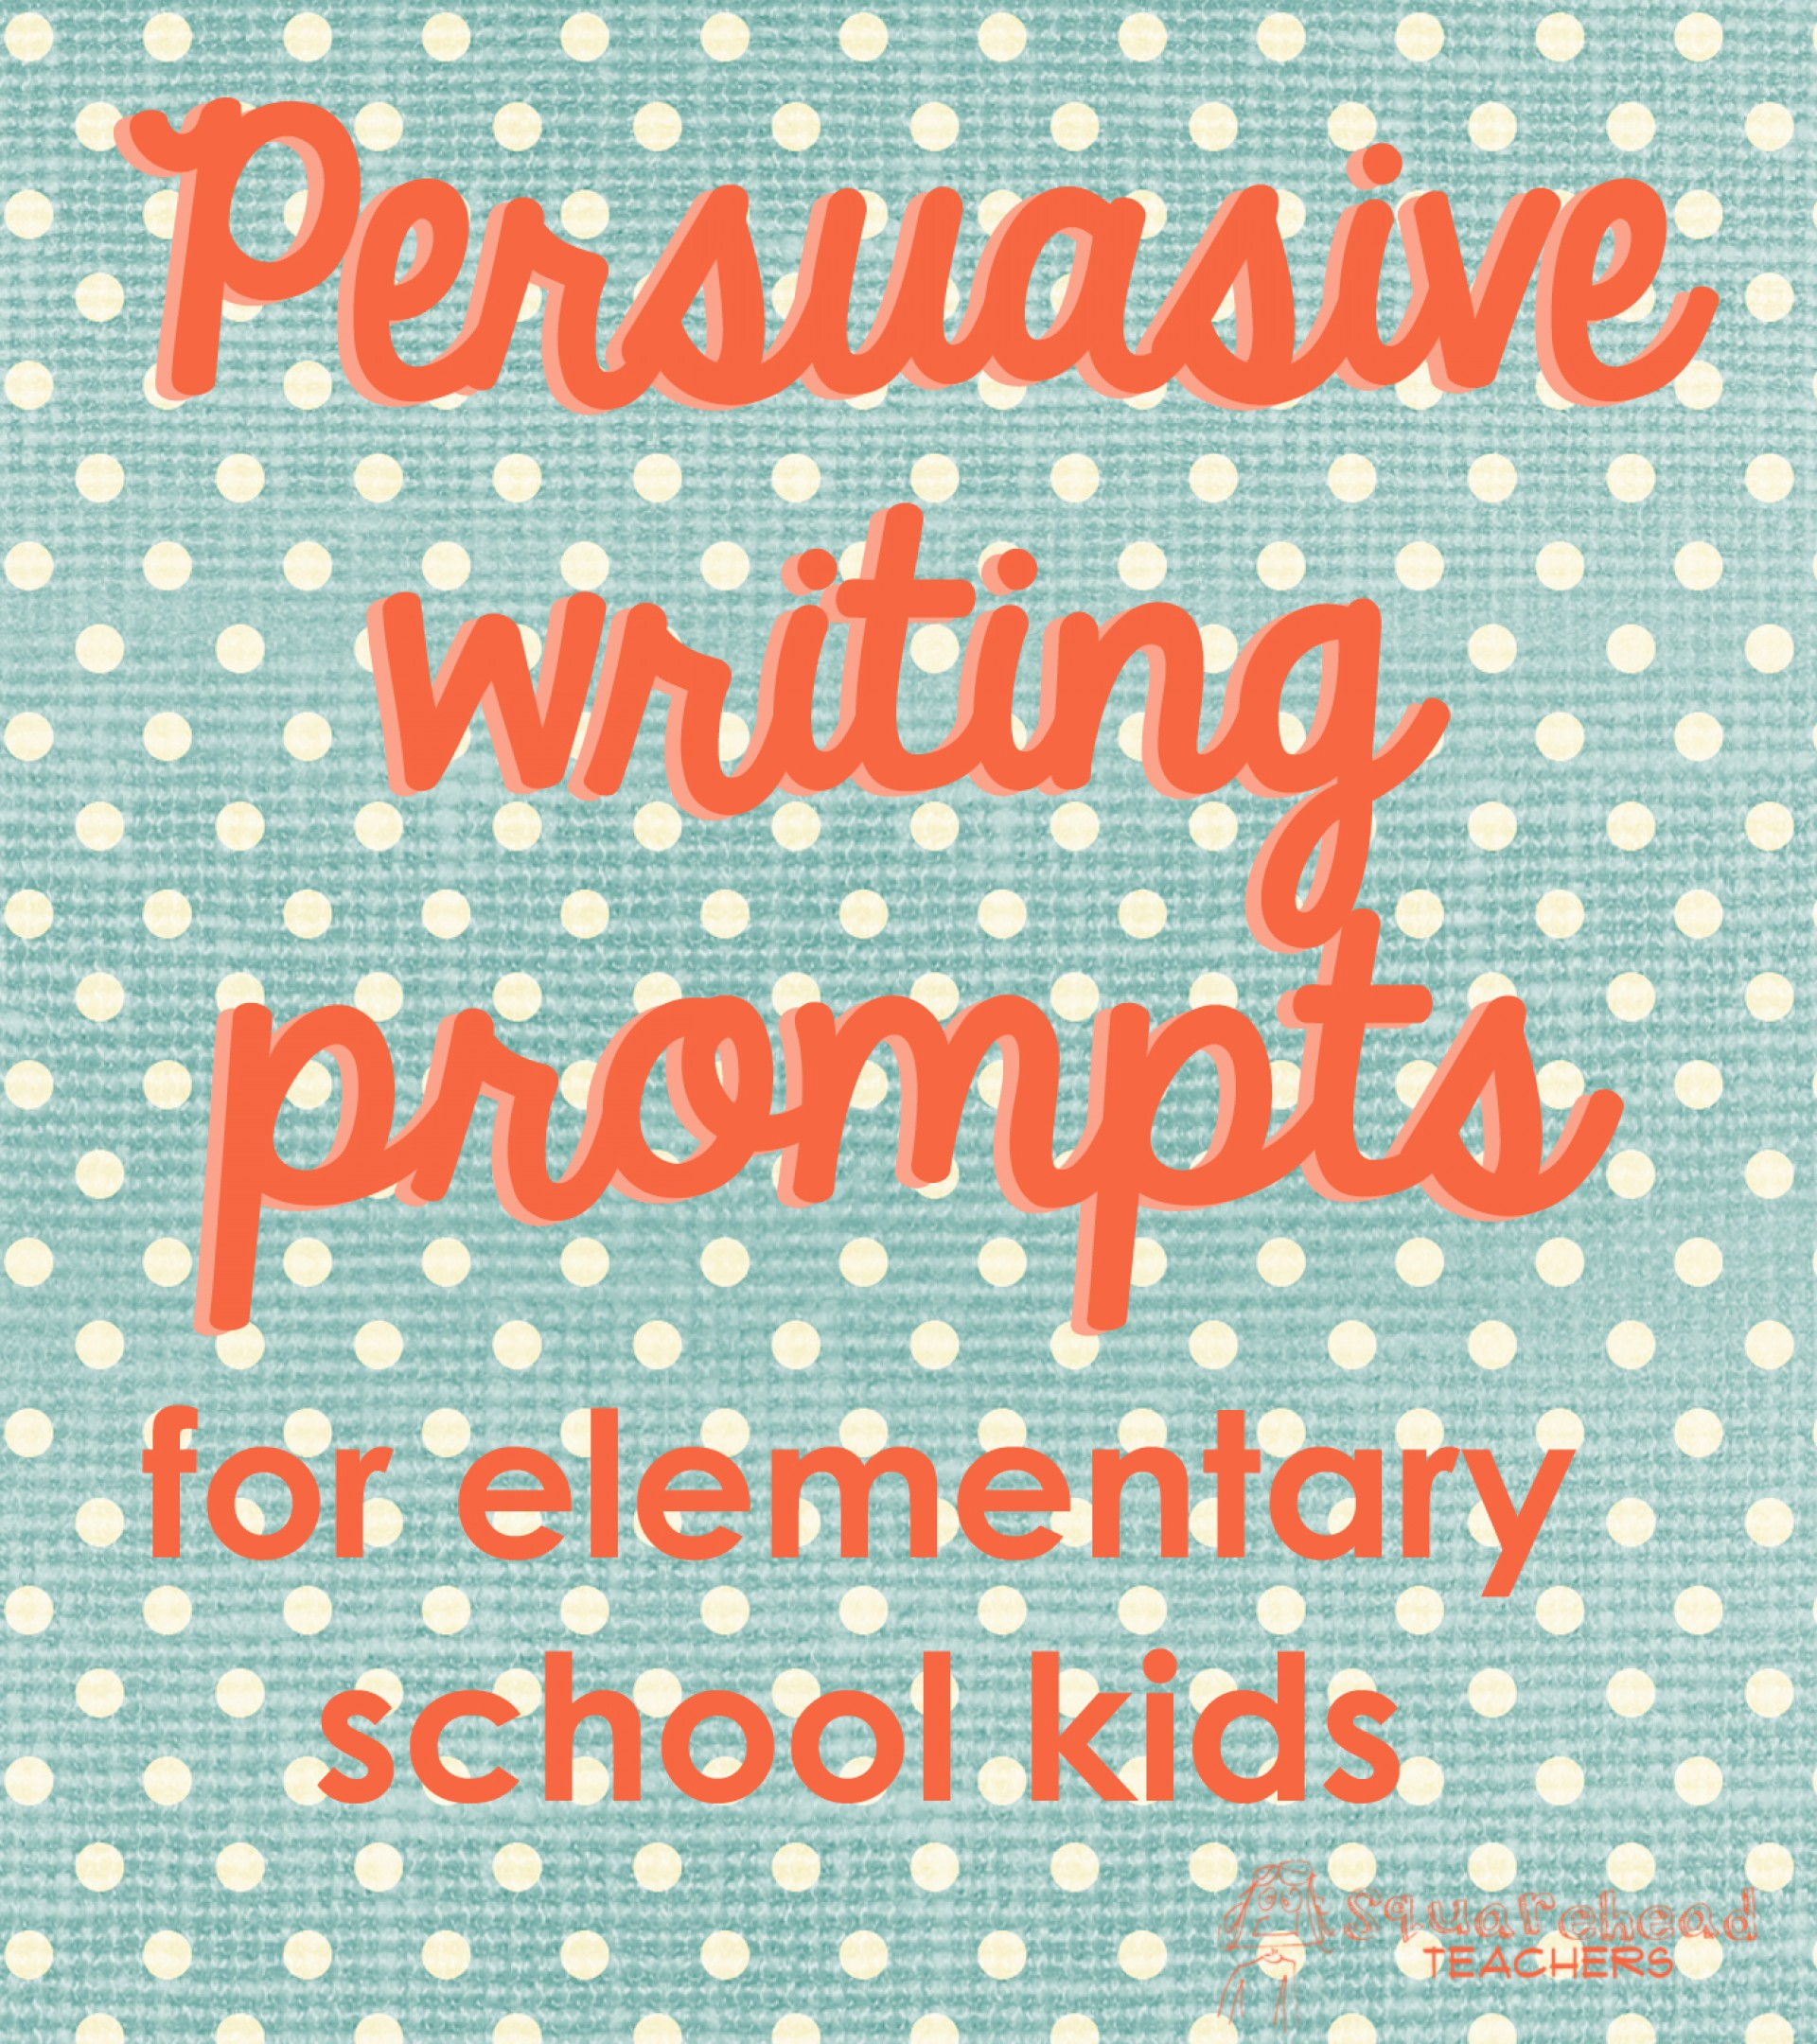 016 Persuasive Writing Prompts For Elementary School Kids Research Paper Topics Incredible Middle High Essay Activities 1920